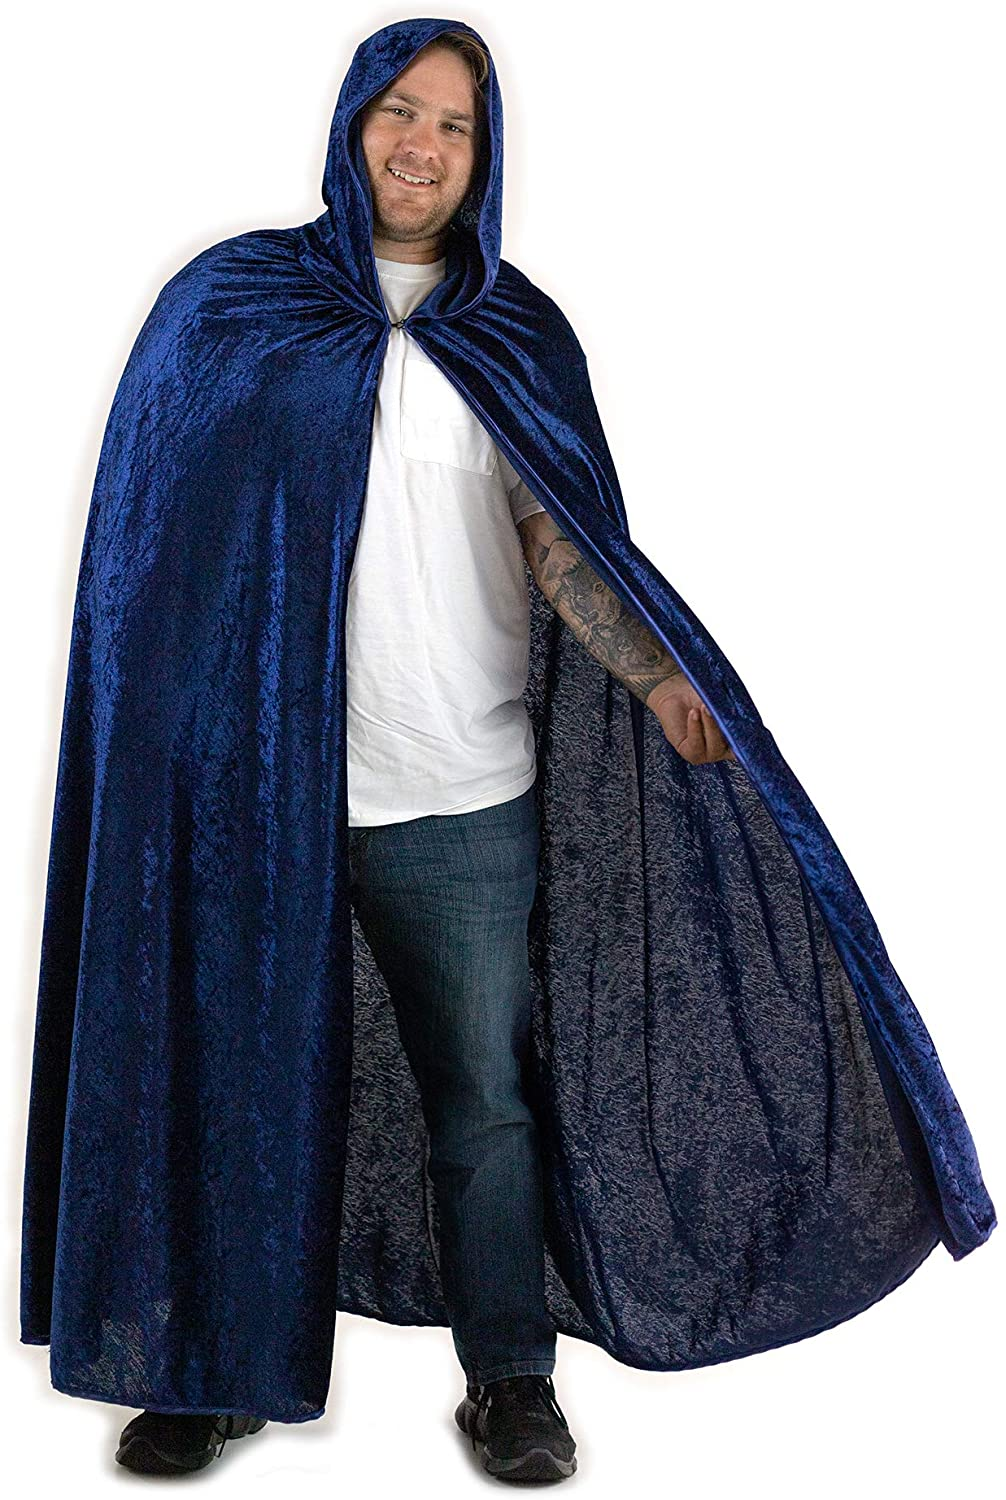 Everfan Hooded Cape for Adults | Mens Cloak with Hood for Halloween Cosplay Costume